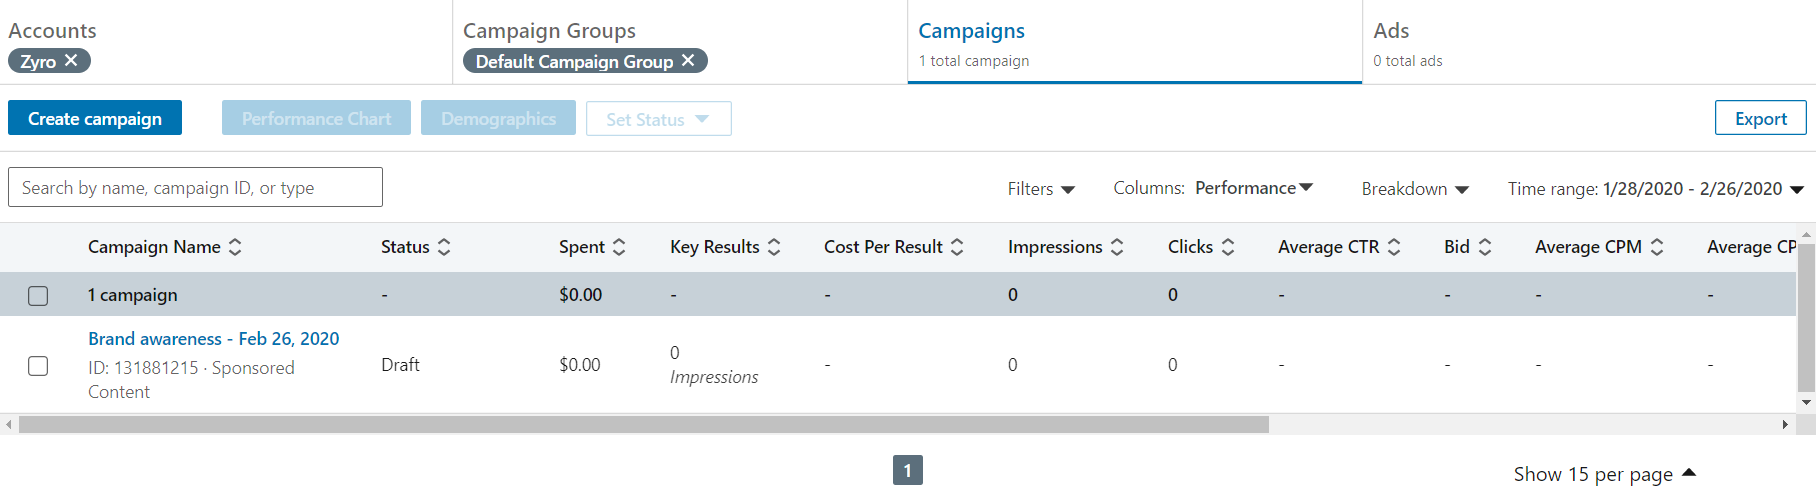 LinkedIn Campaign dashboard to see and track your ad campaign performance